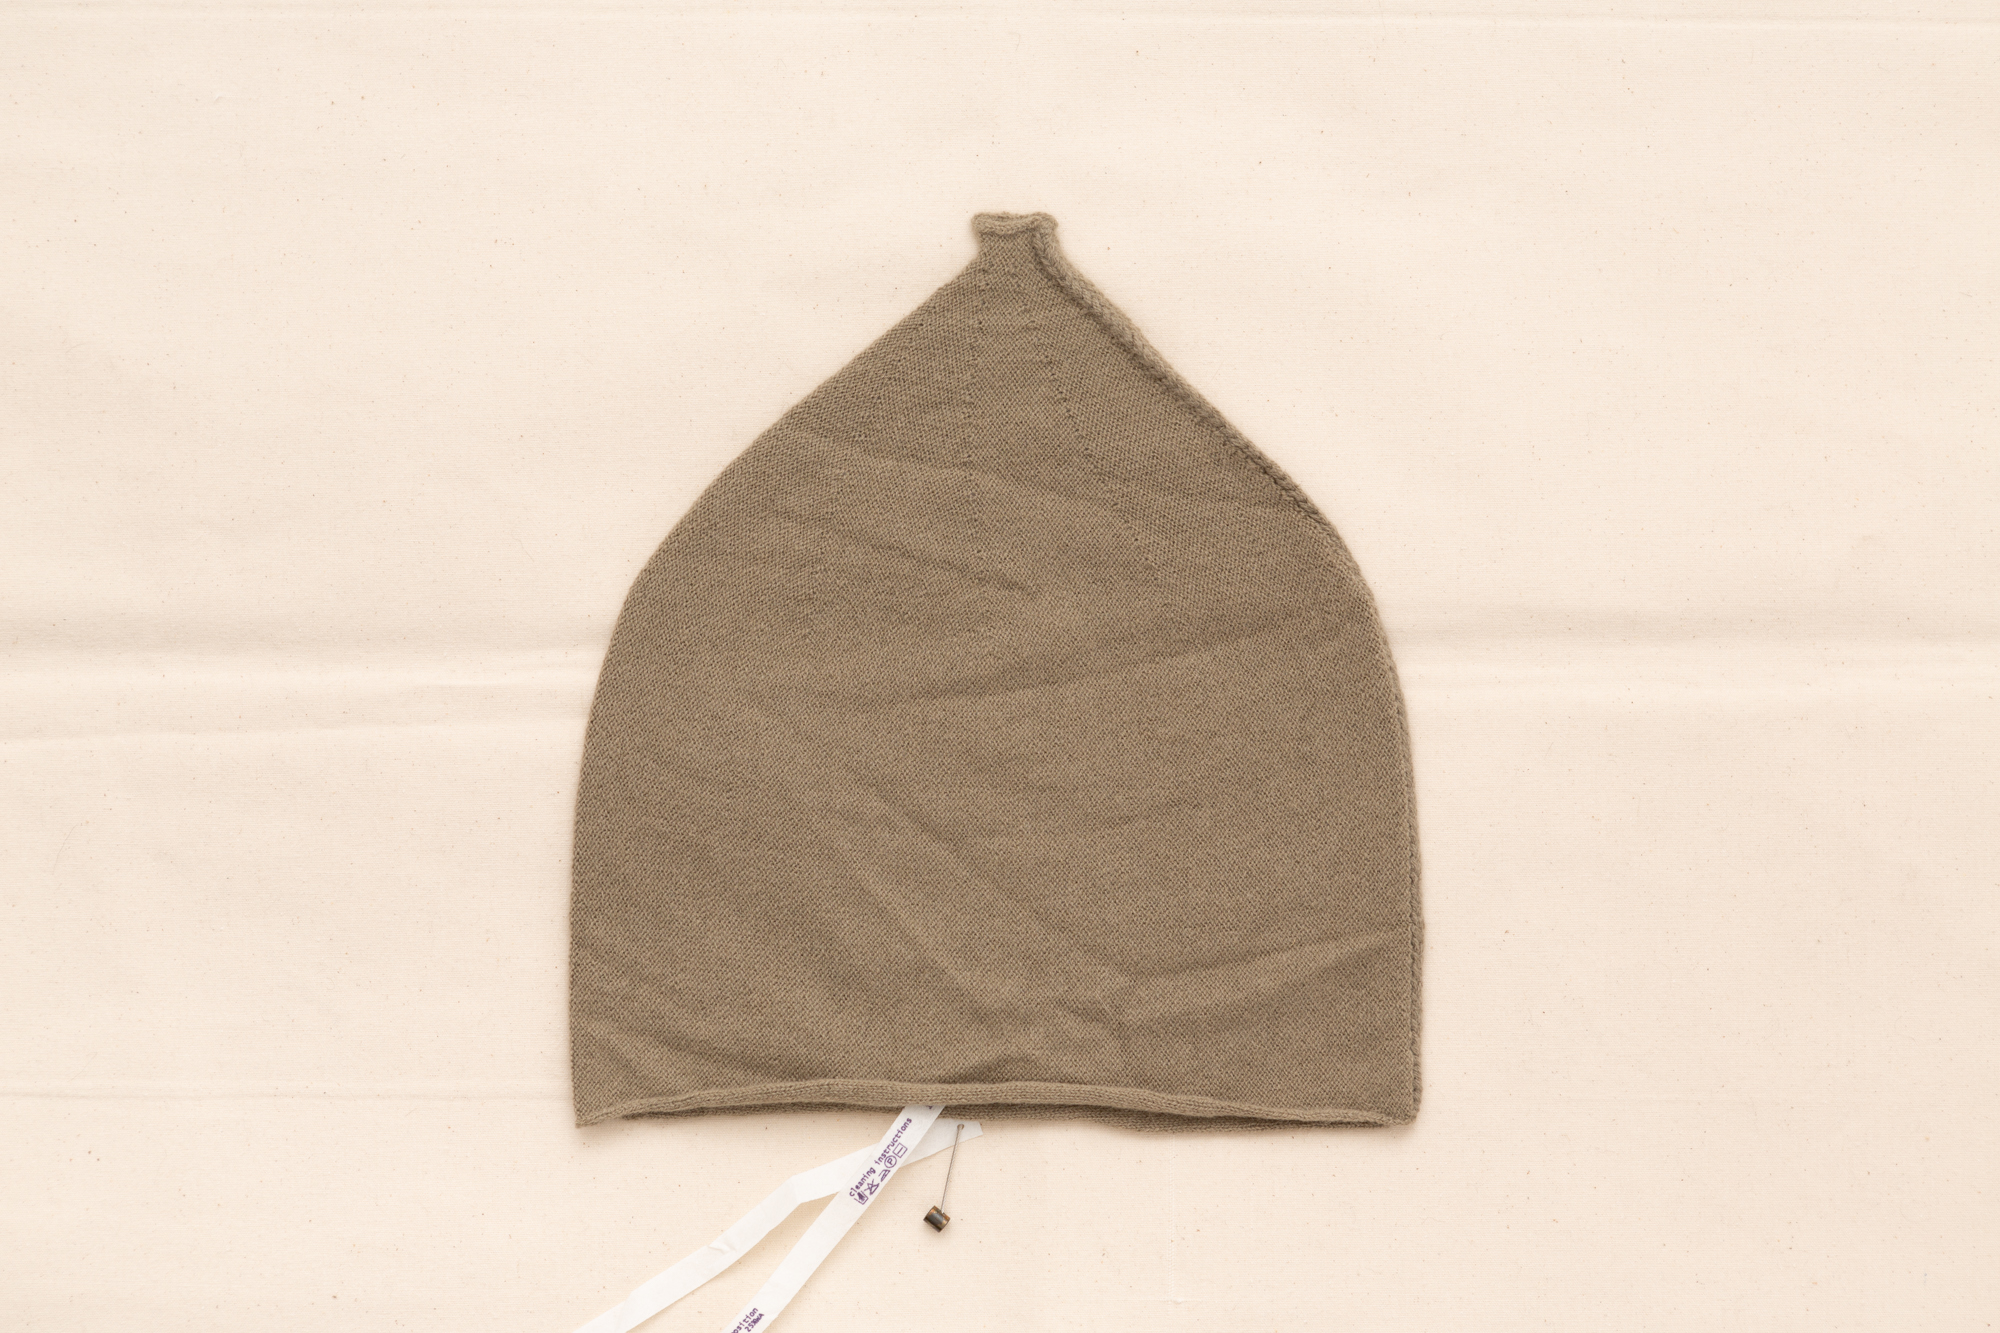 ZIPPED SEAM DOME BEANIE BY LUCA LAURINI